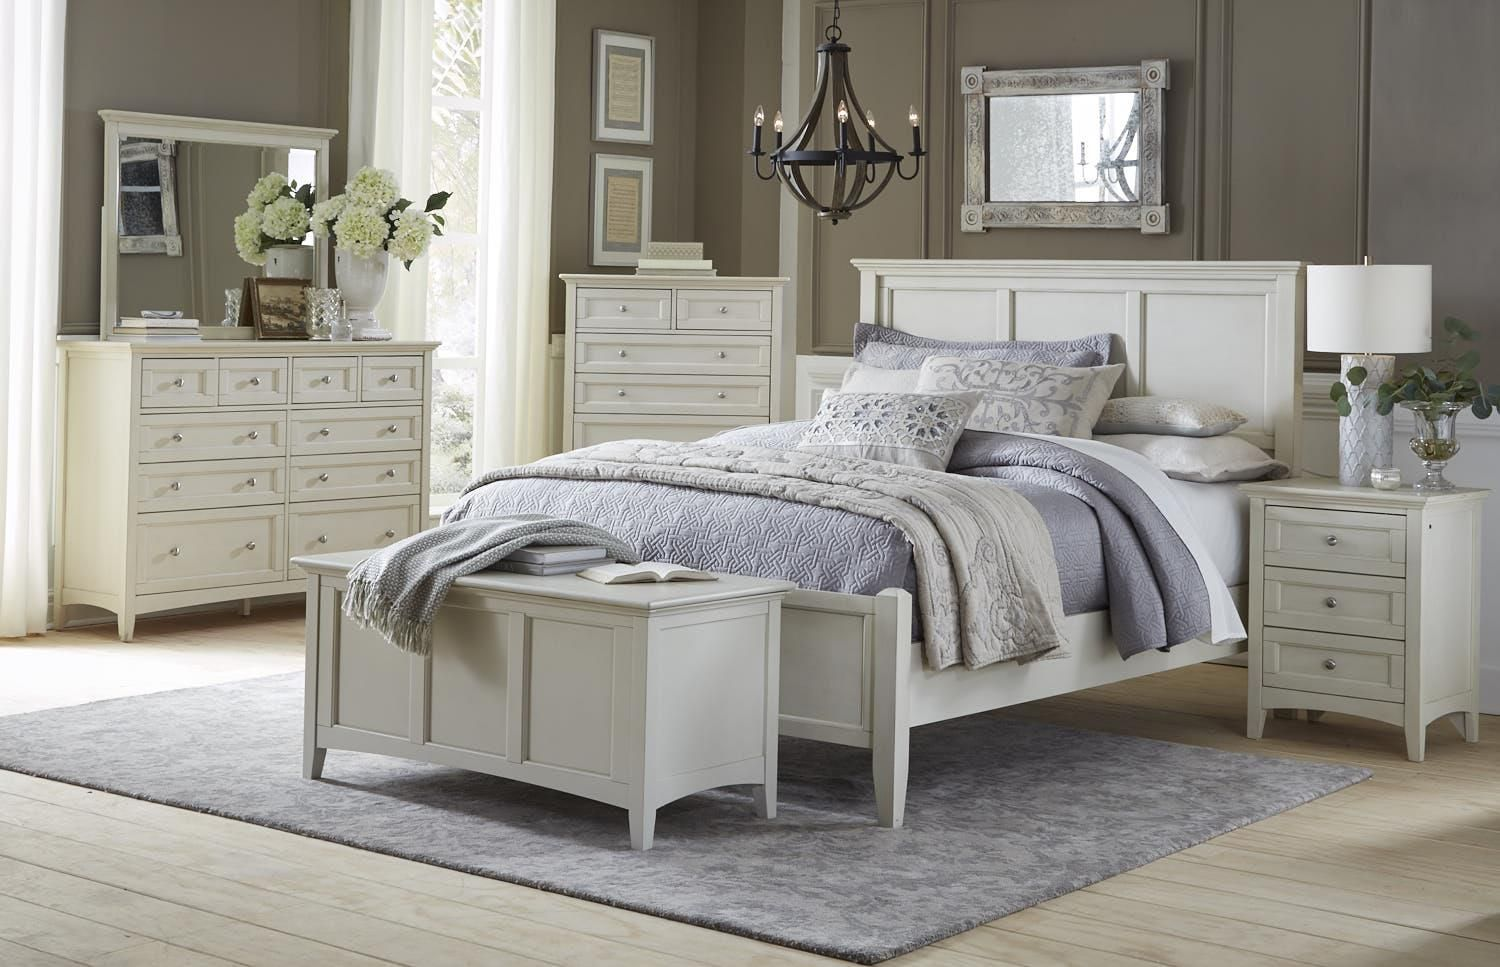 The Northlake Bedroom collection by AAmerica. Available